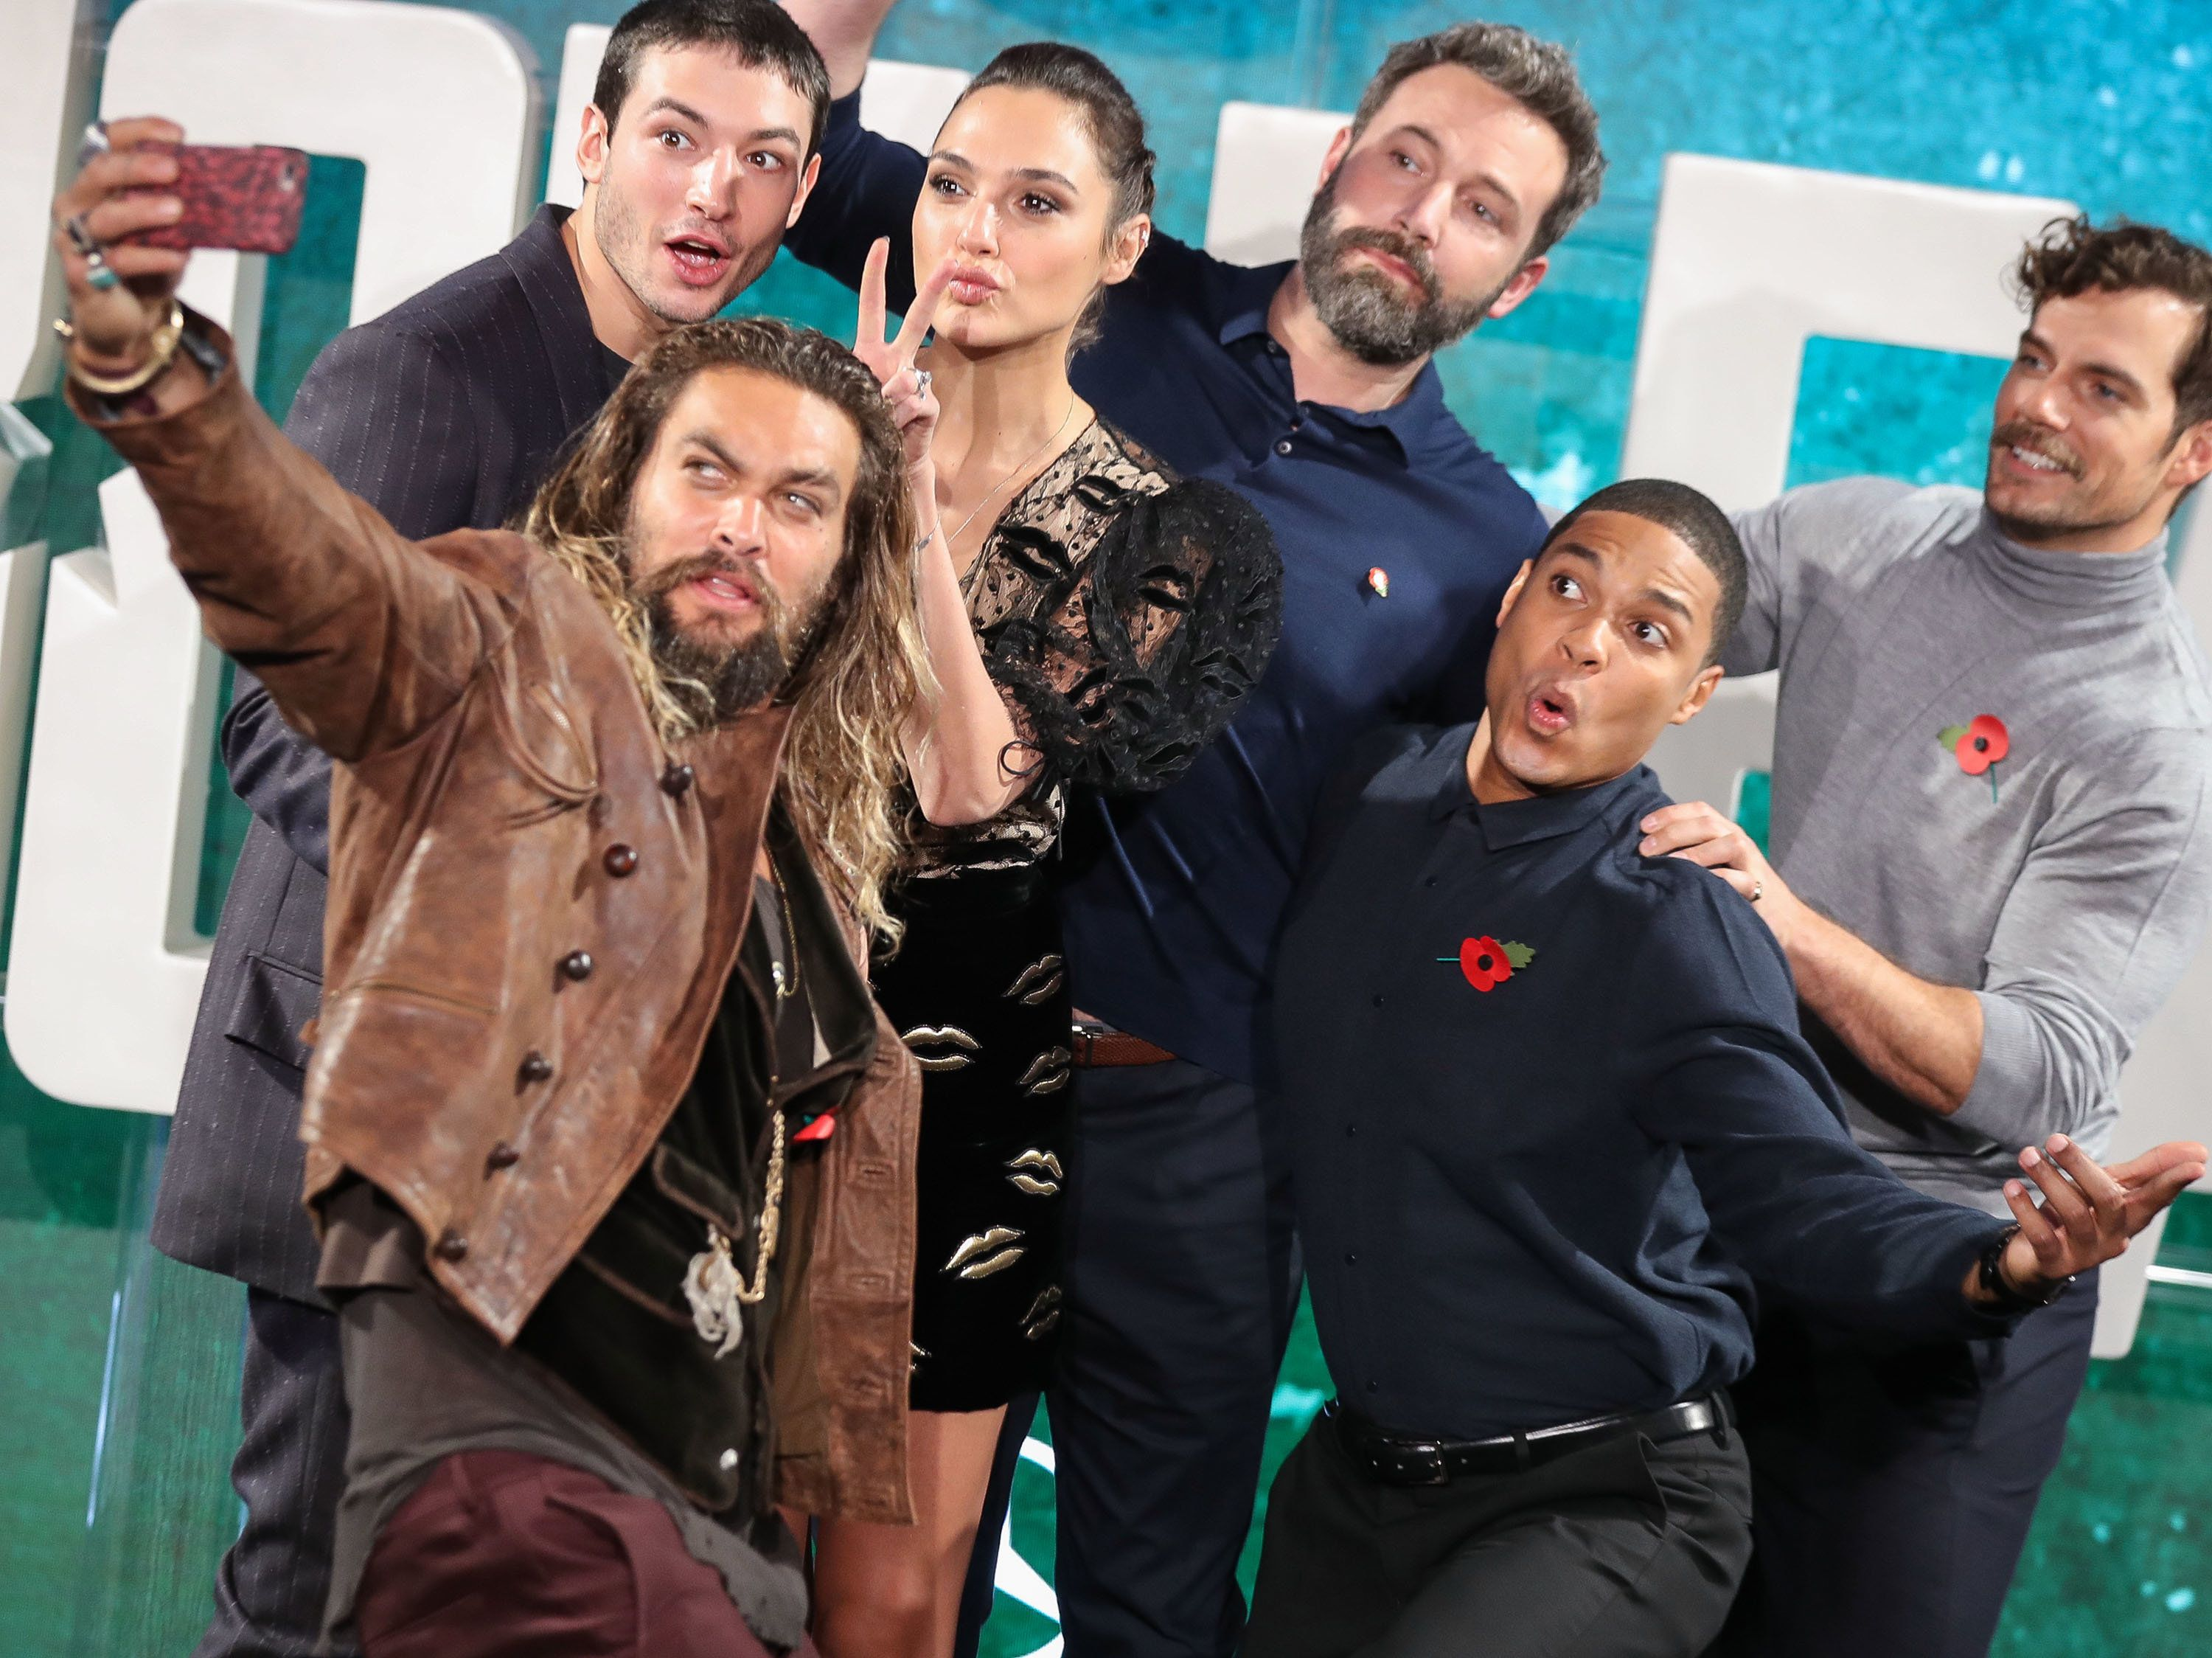 LONDON, ENGLAND - NOVEMBER 04:  Jason Momoa, Ezra Miller, Gal Gadot, Ben Affleck, Ray Fisher and Henry Cavill  attend the 'Justice League' photocall at The College on November 4, 2017 in London, England.  (Photo by Mike Marsland/Mike Marsland/WireImage)